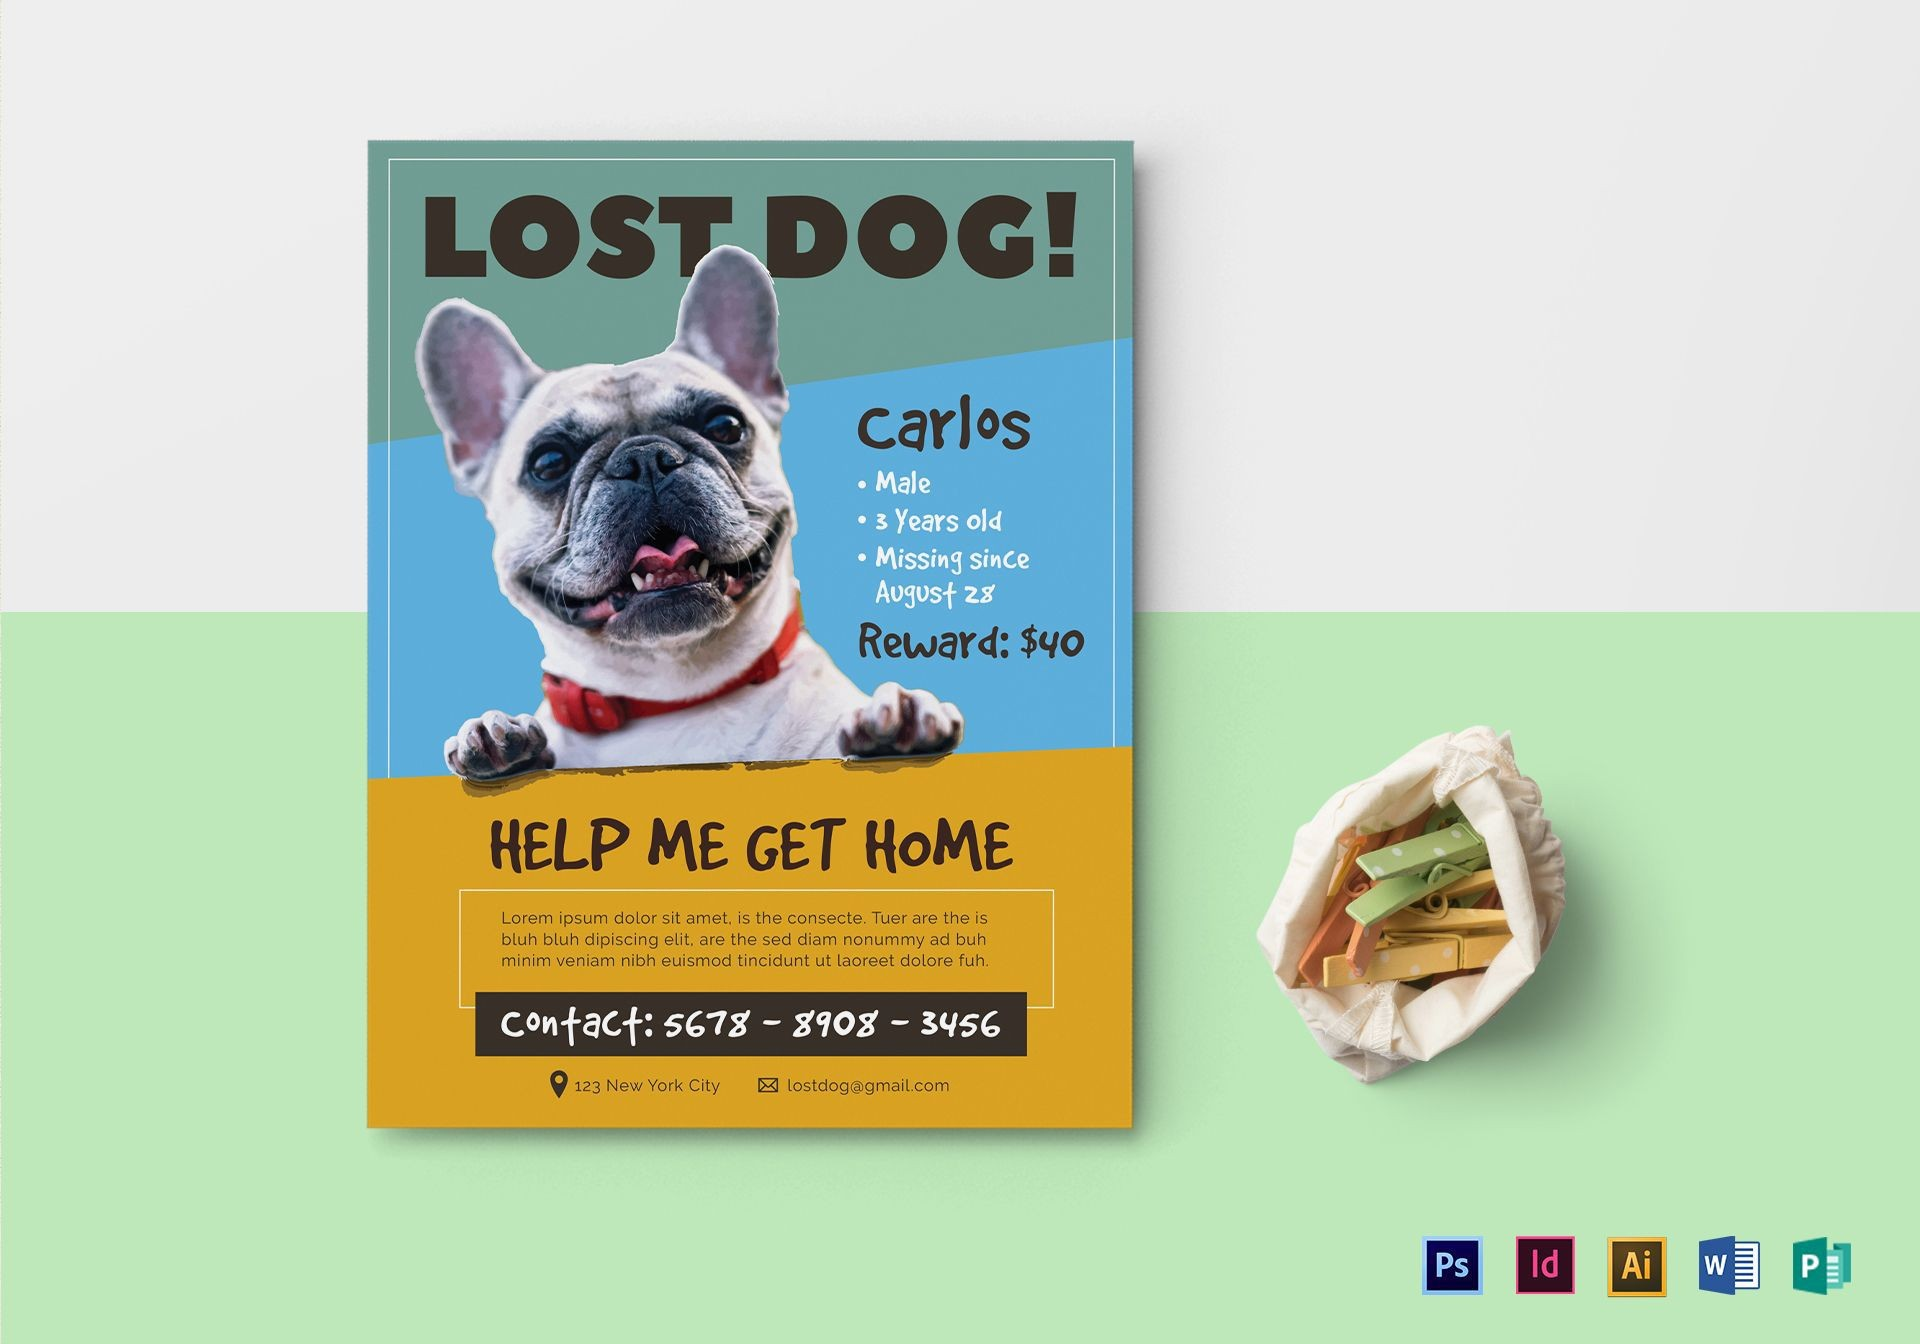 006 Fearsome Lost Pet Flyer Template Photo  Word1920